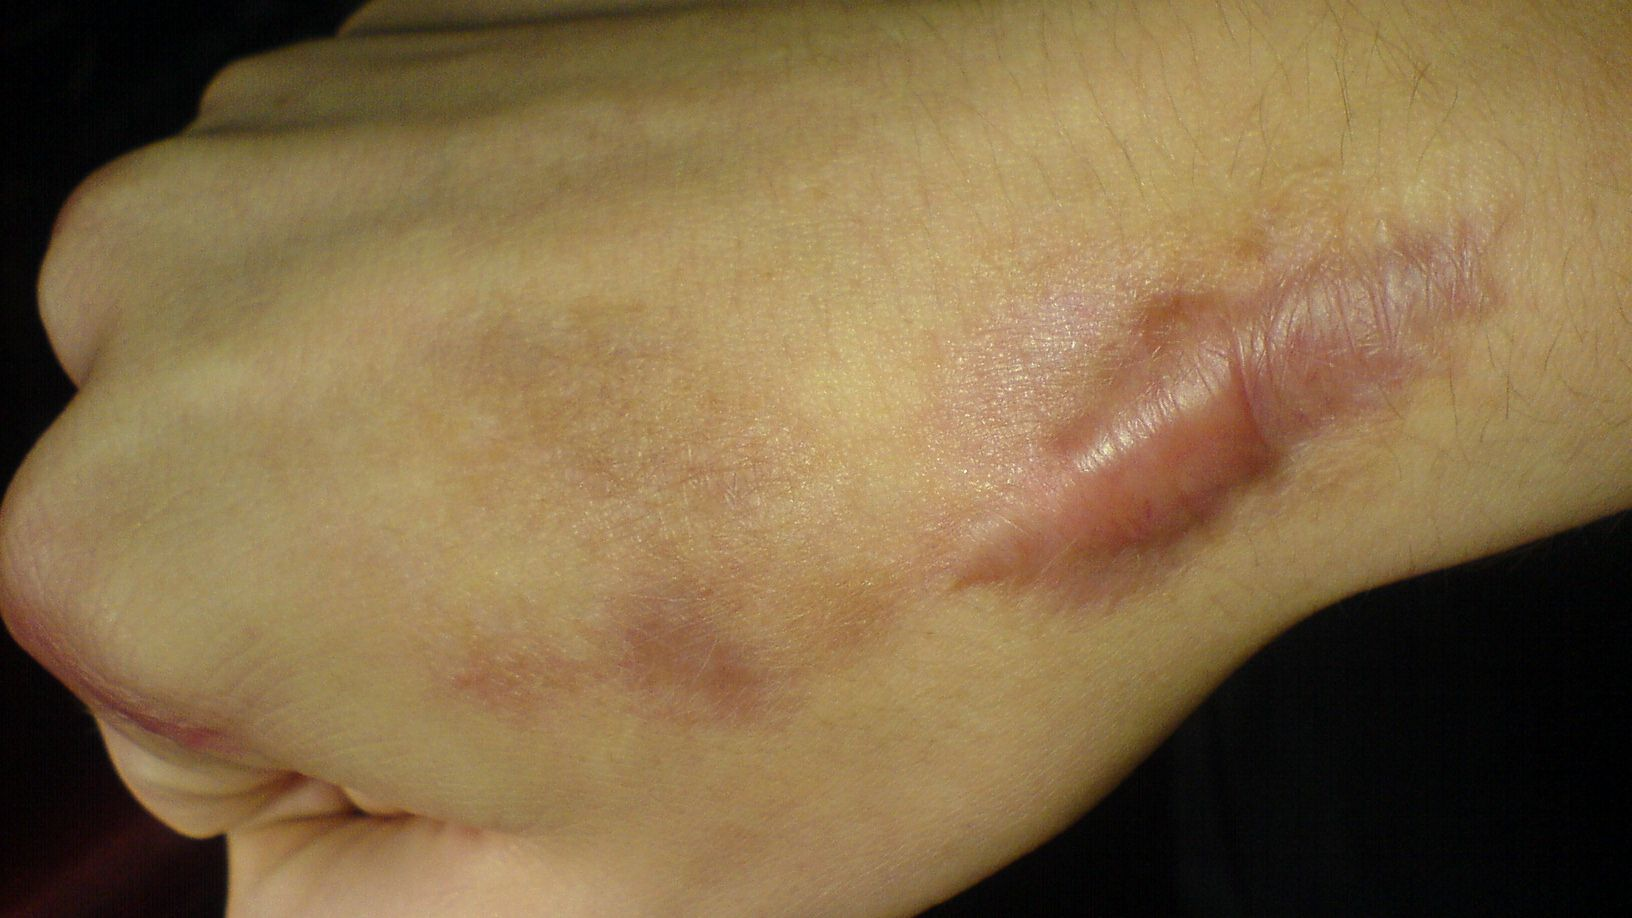 What Are The Causes Of Keloid Scars